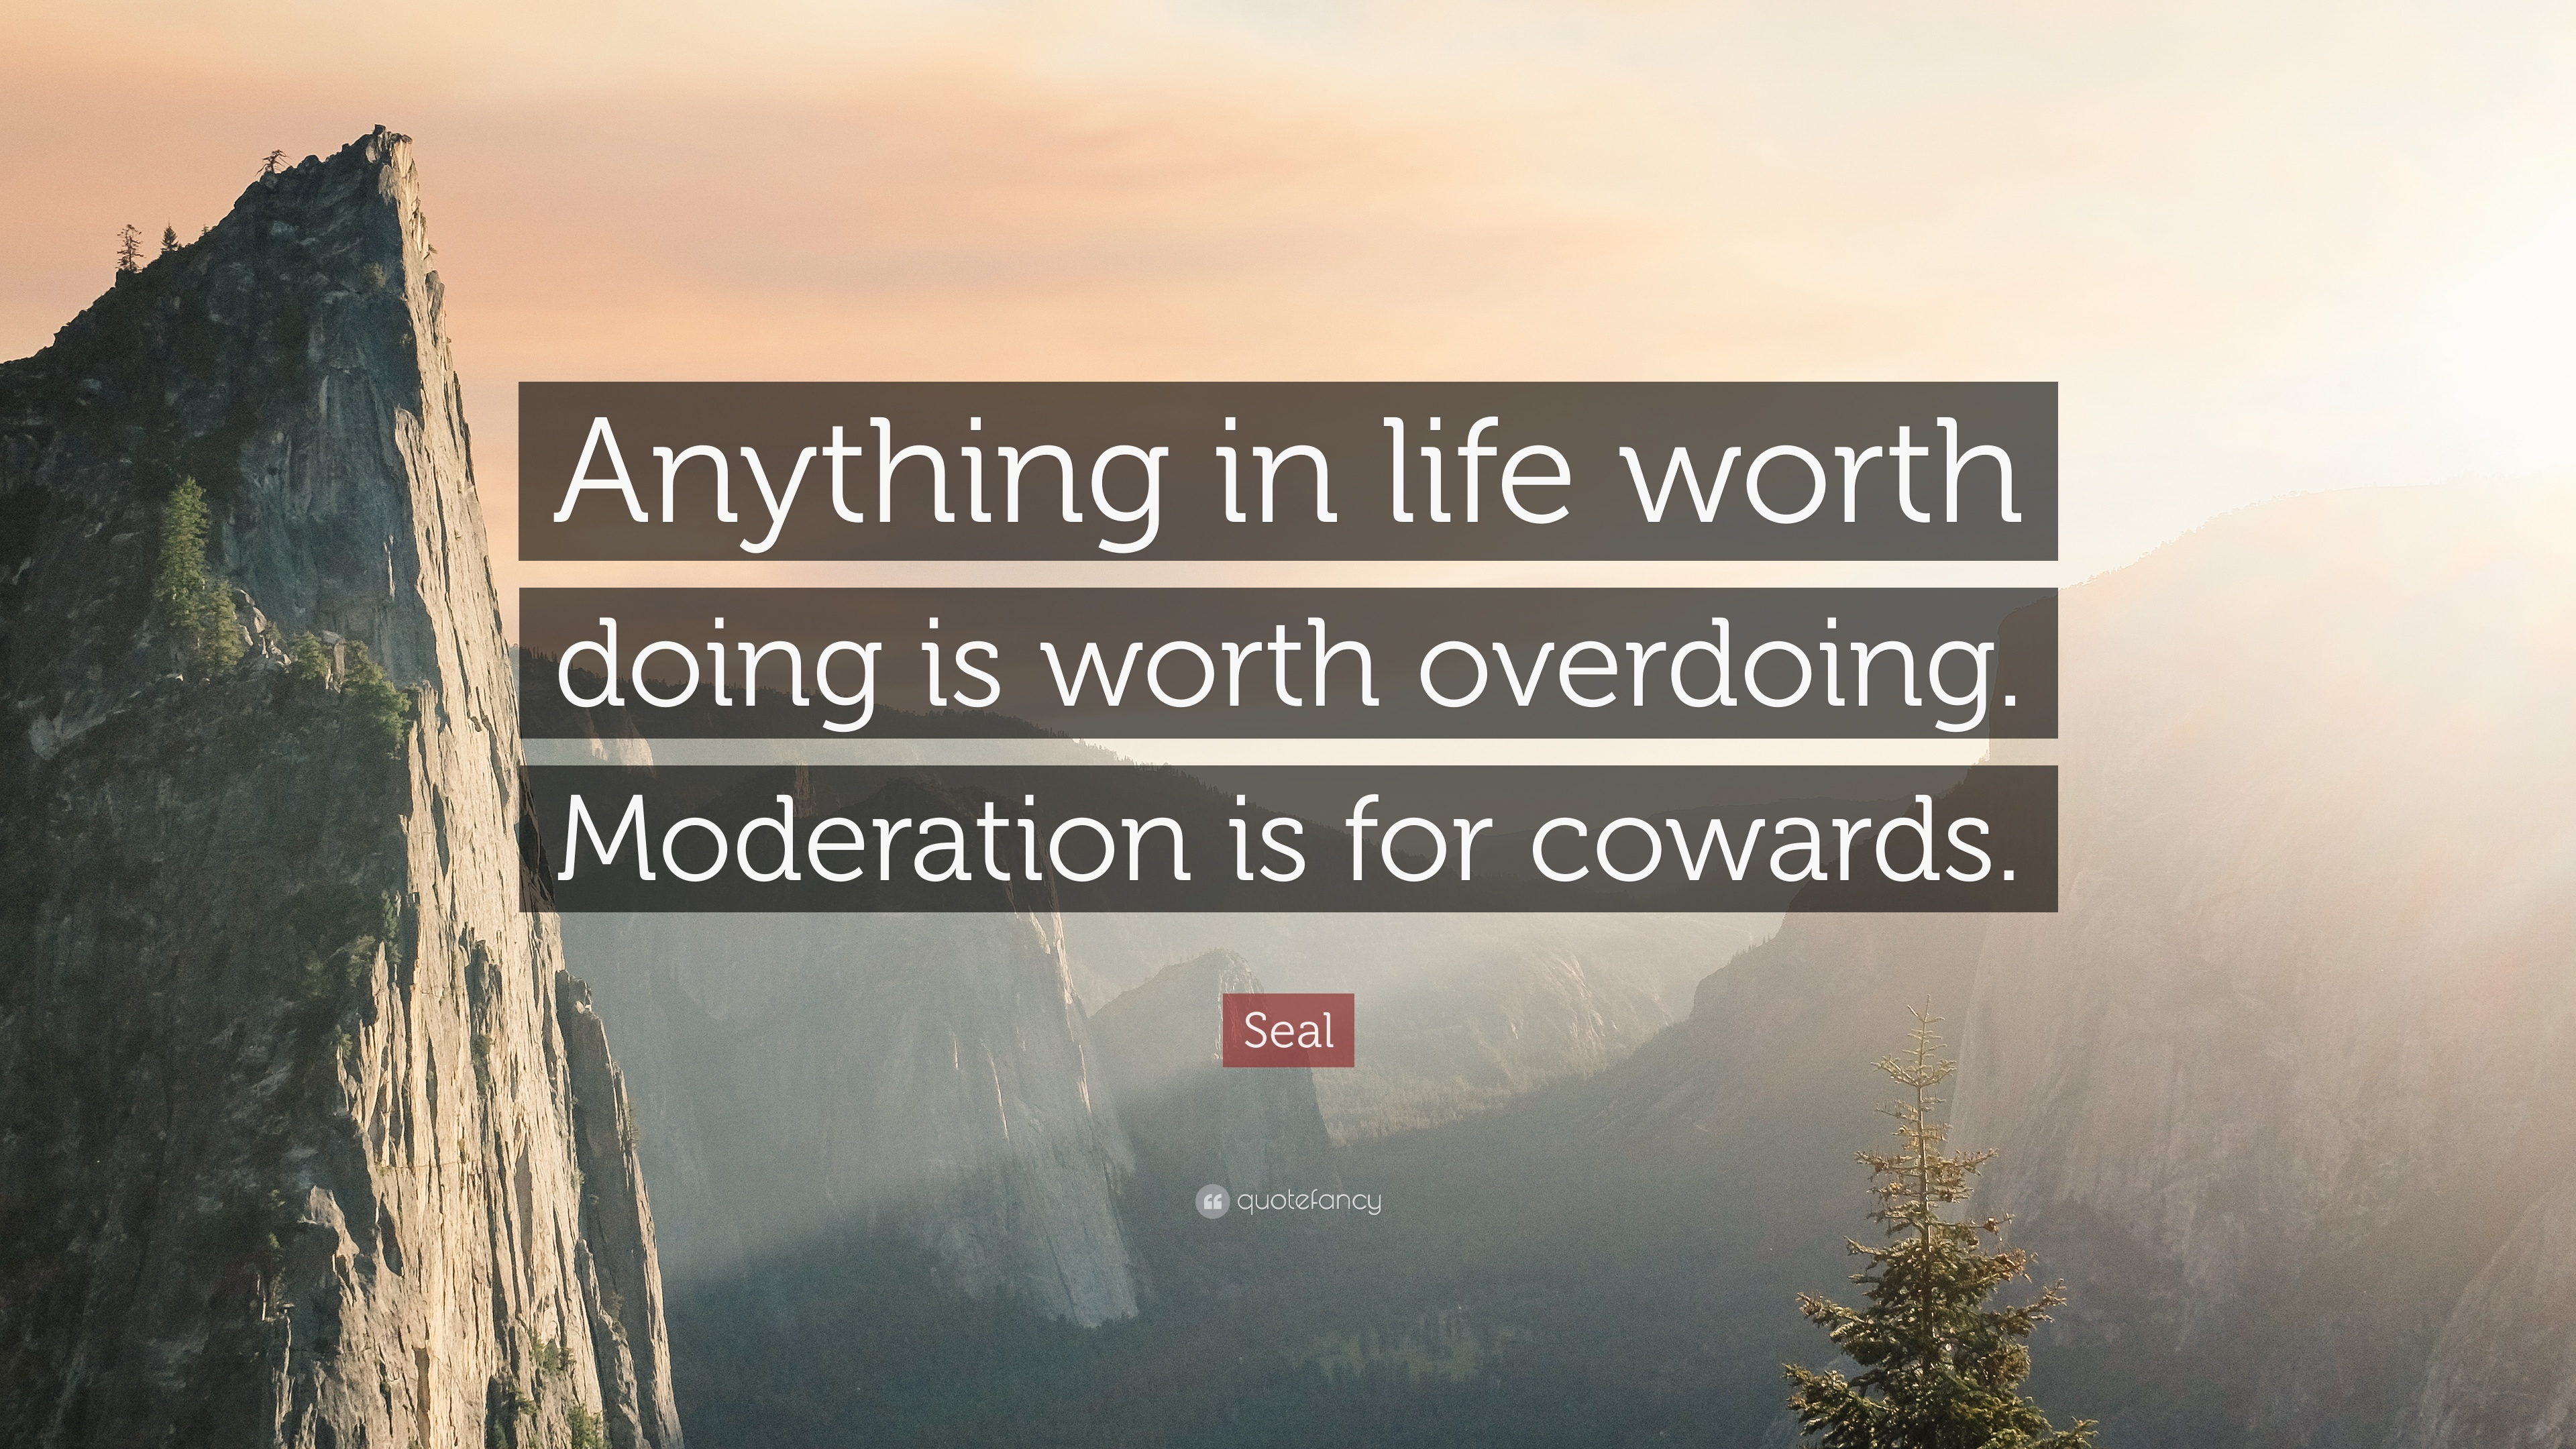 Everything worth doing is worth overdoing moderation is for cowards